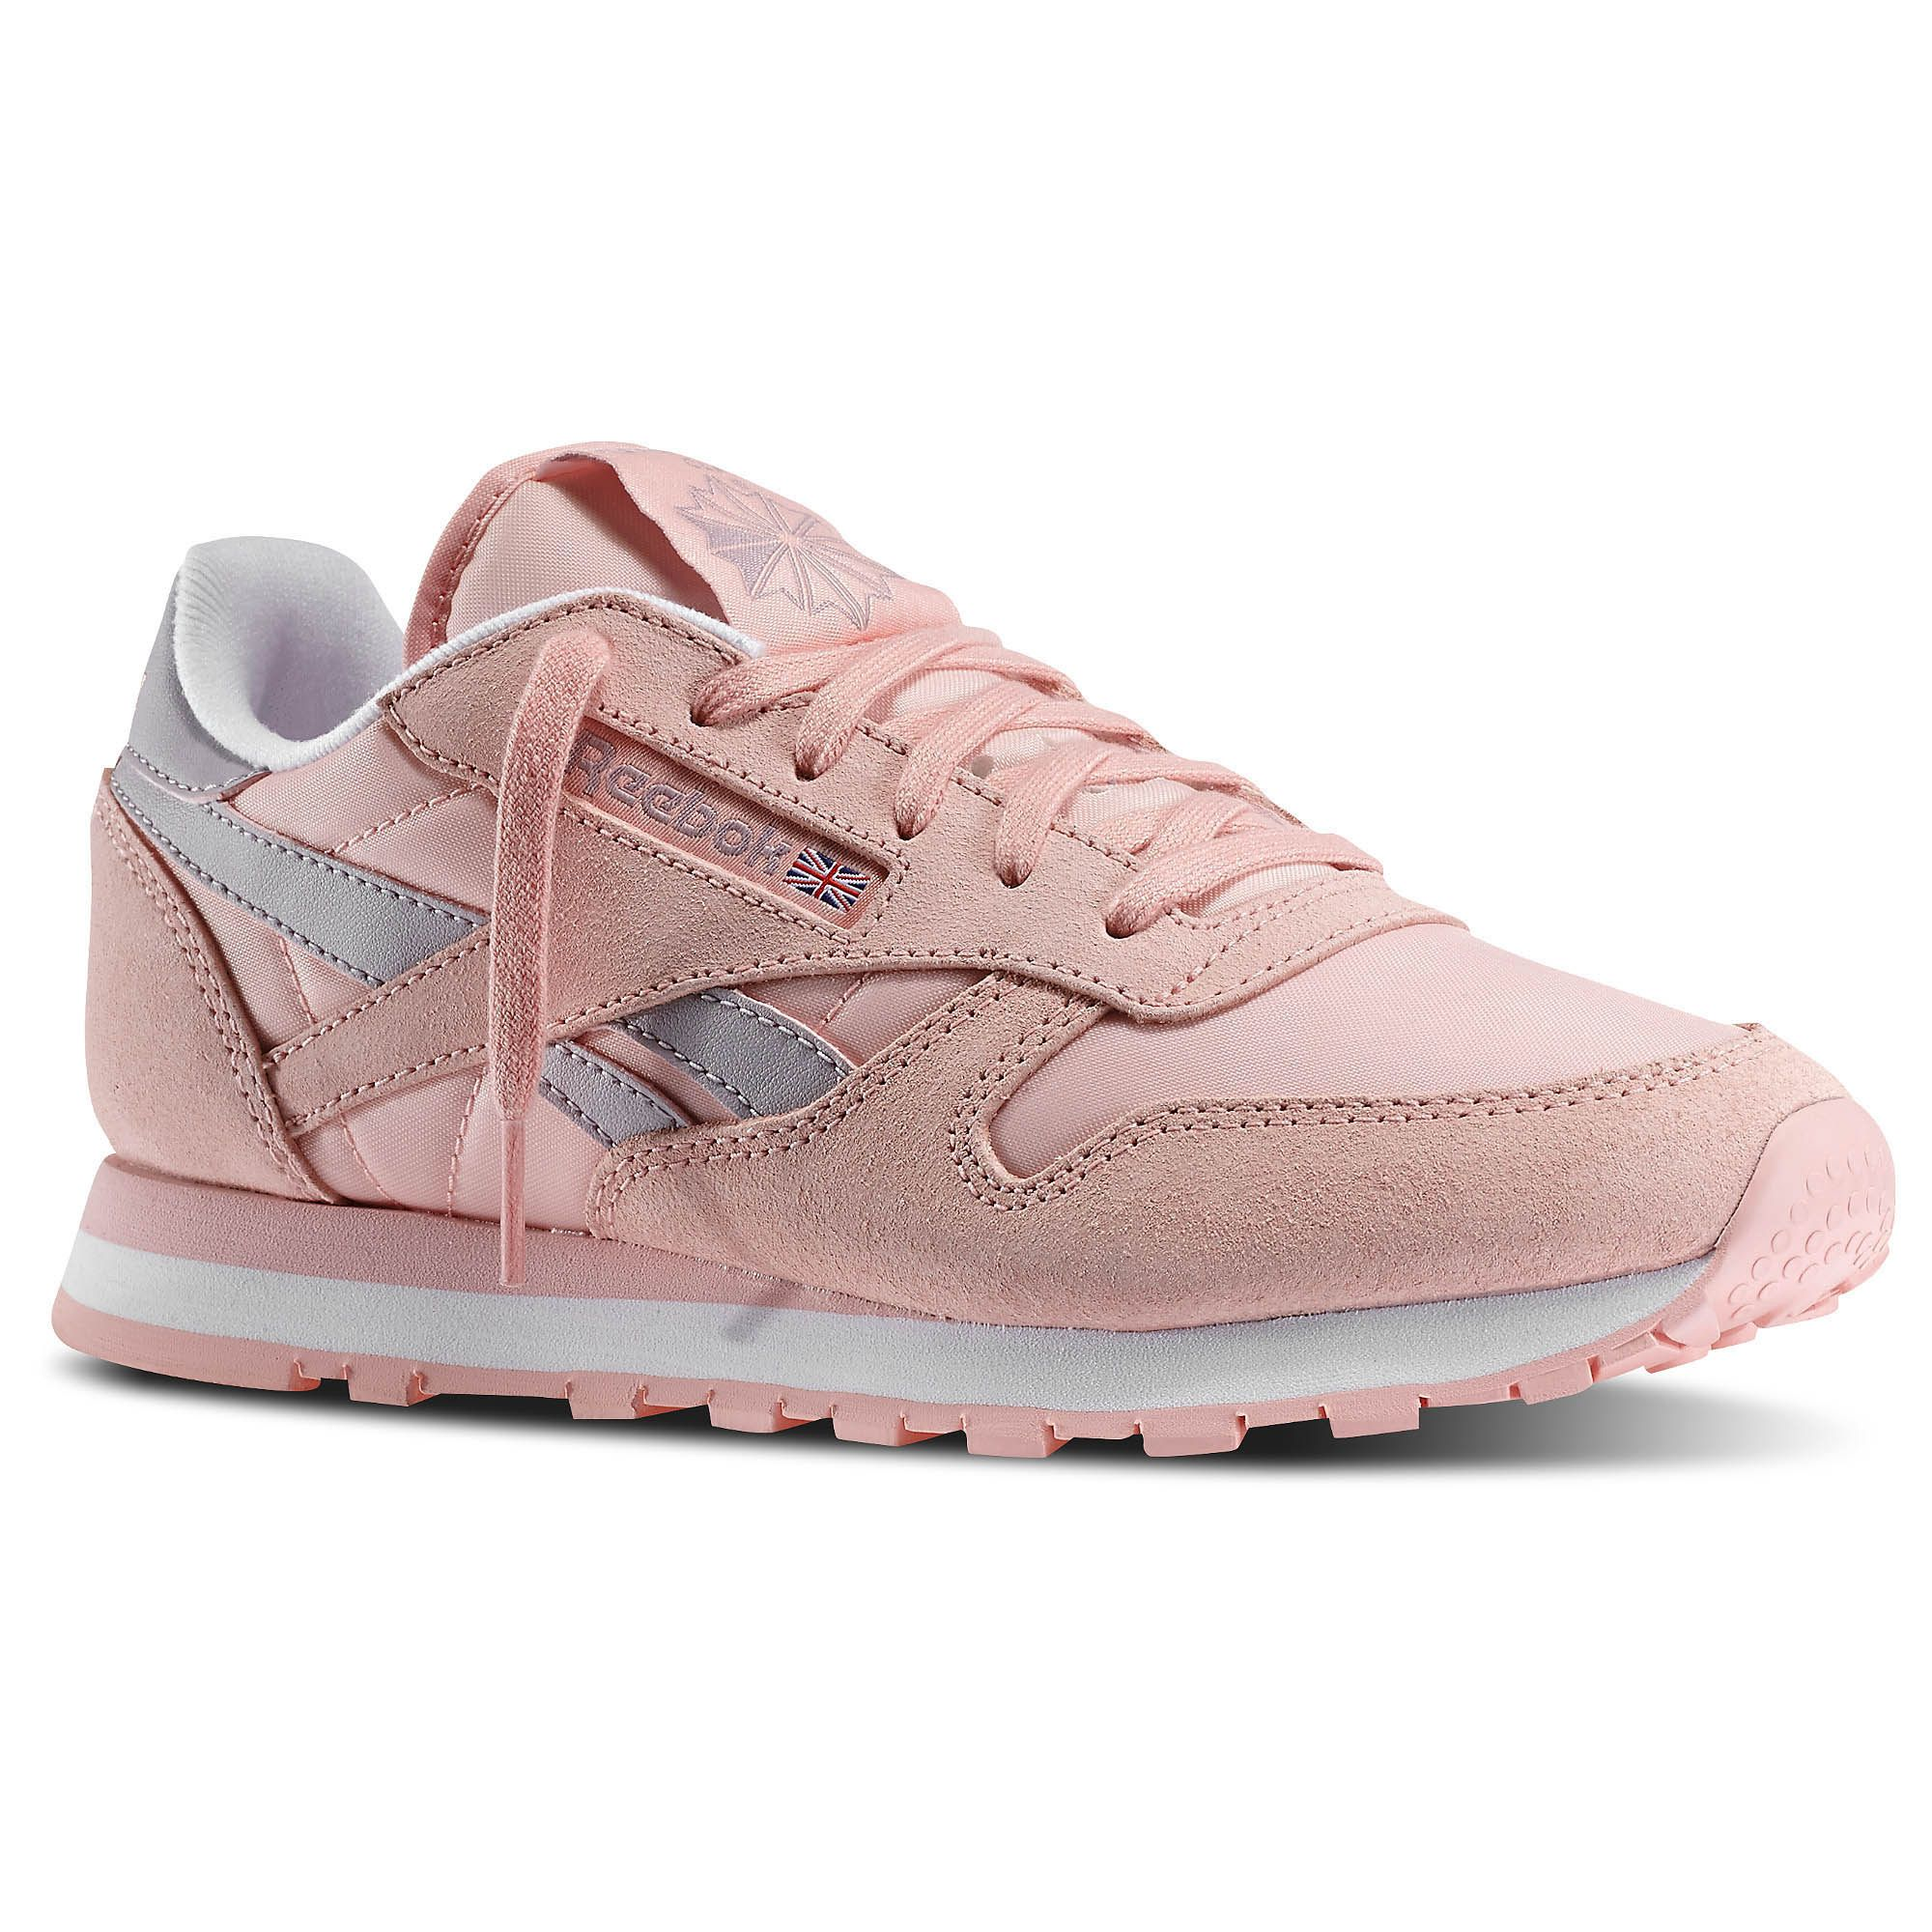 Women s classic leather casual trainer with touches of the bright ... b89154669d4